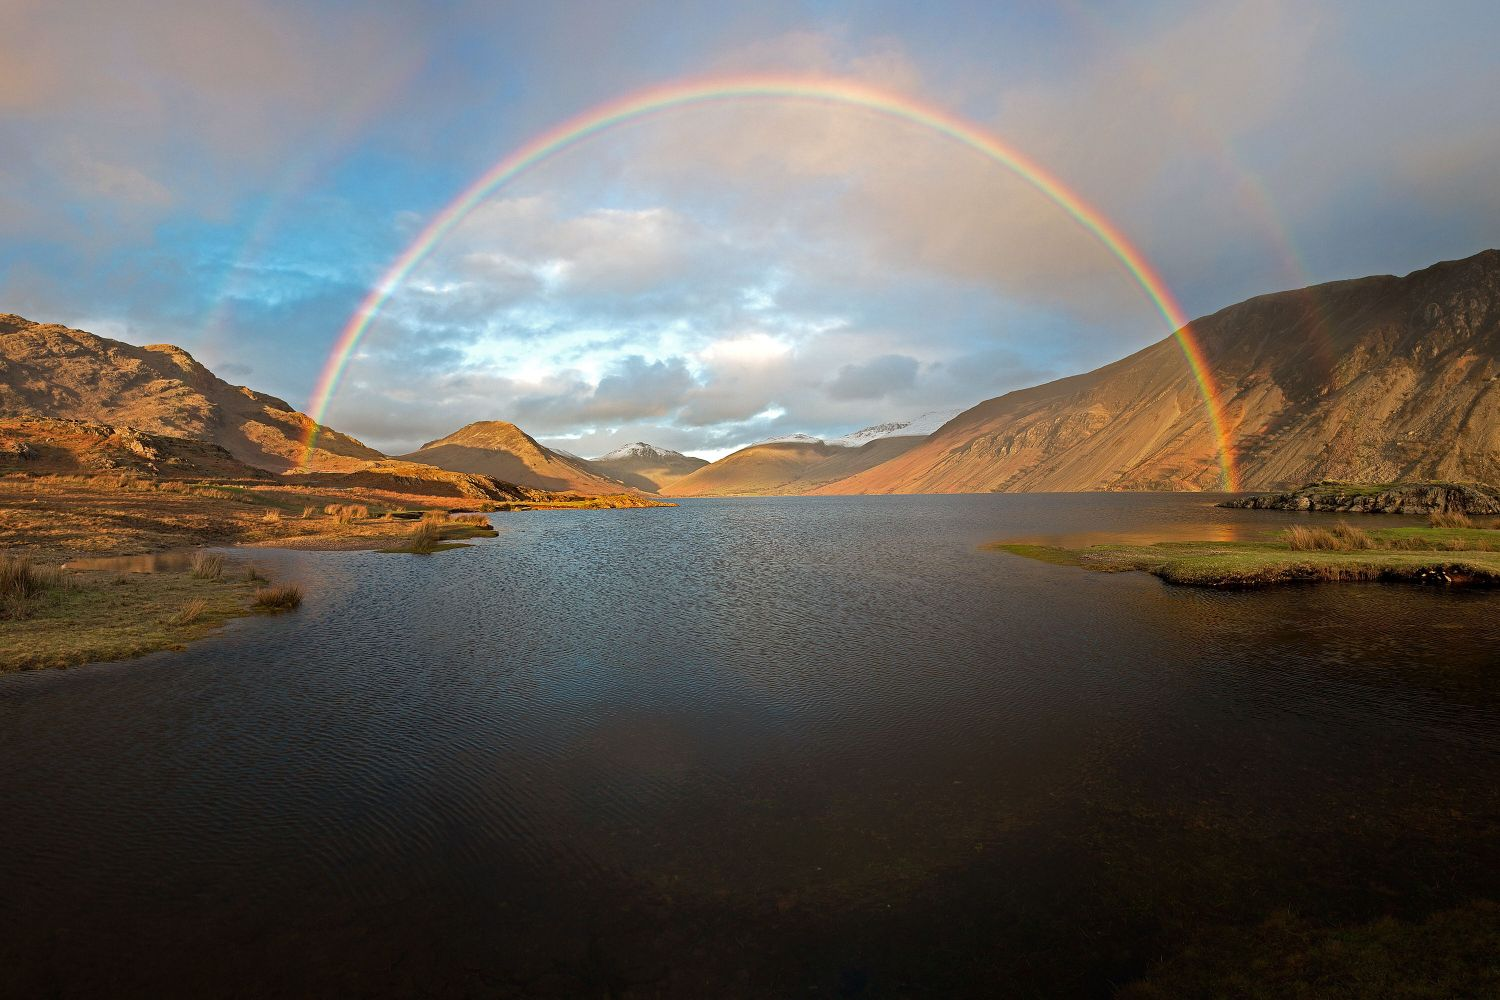 Full circle rainbow over Wastwater